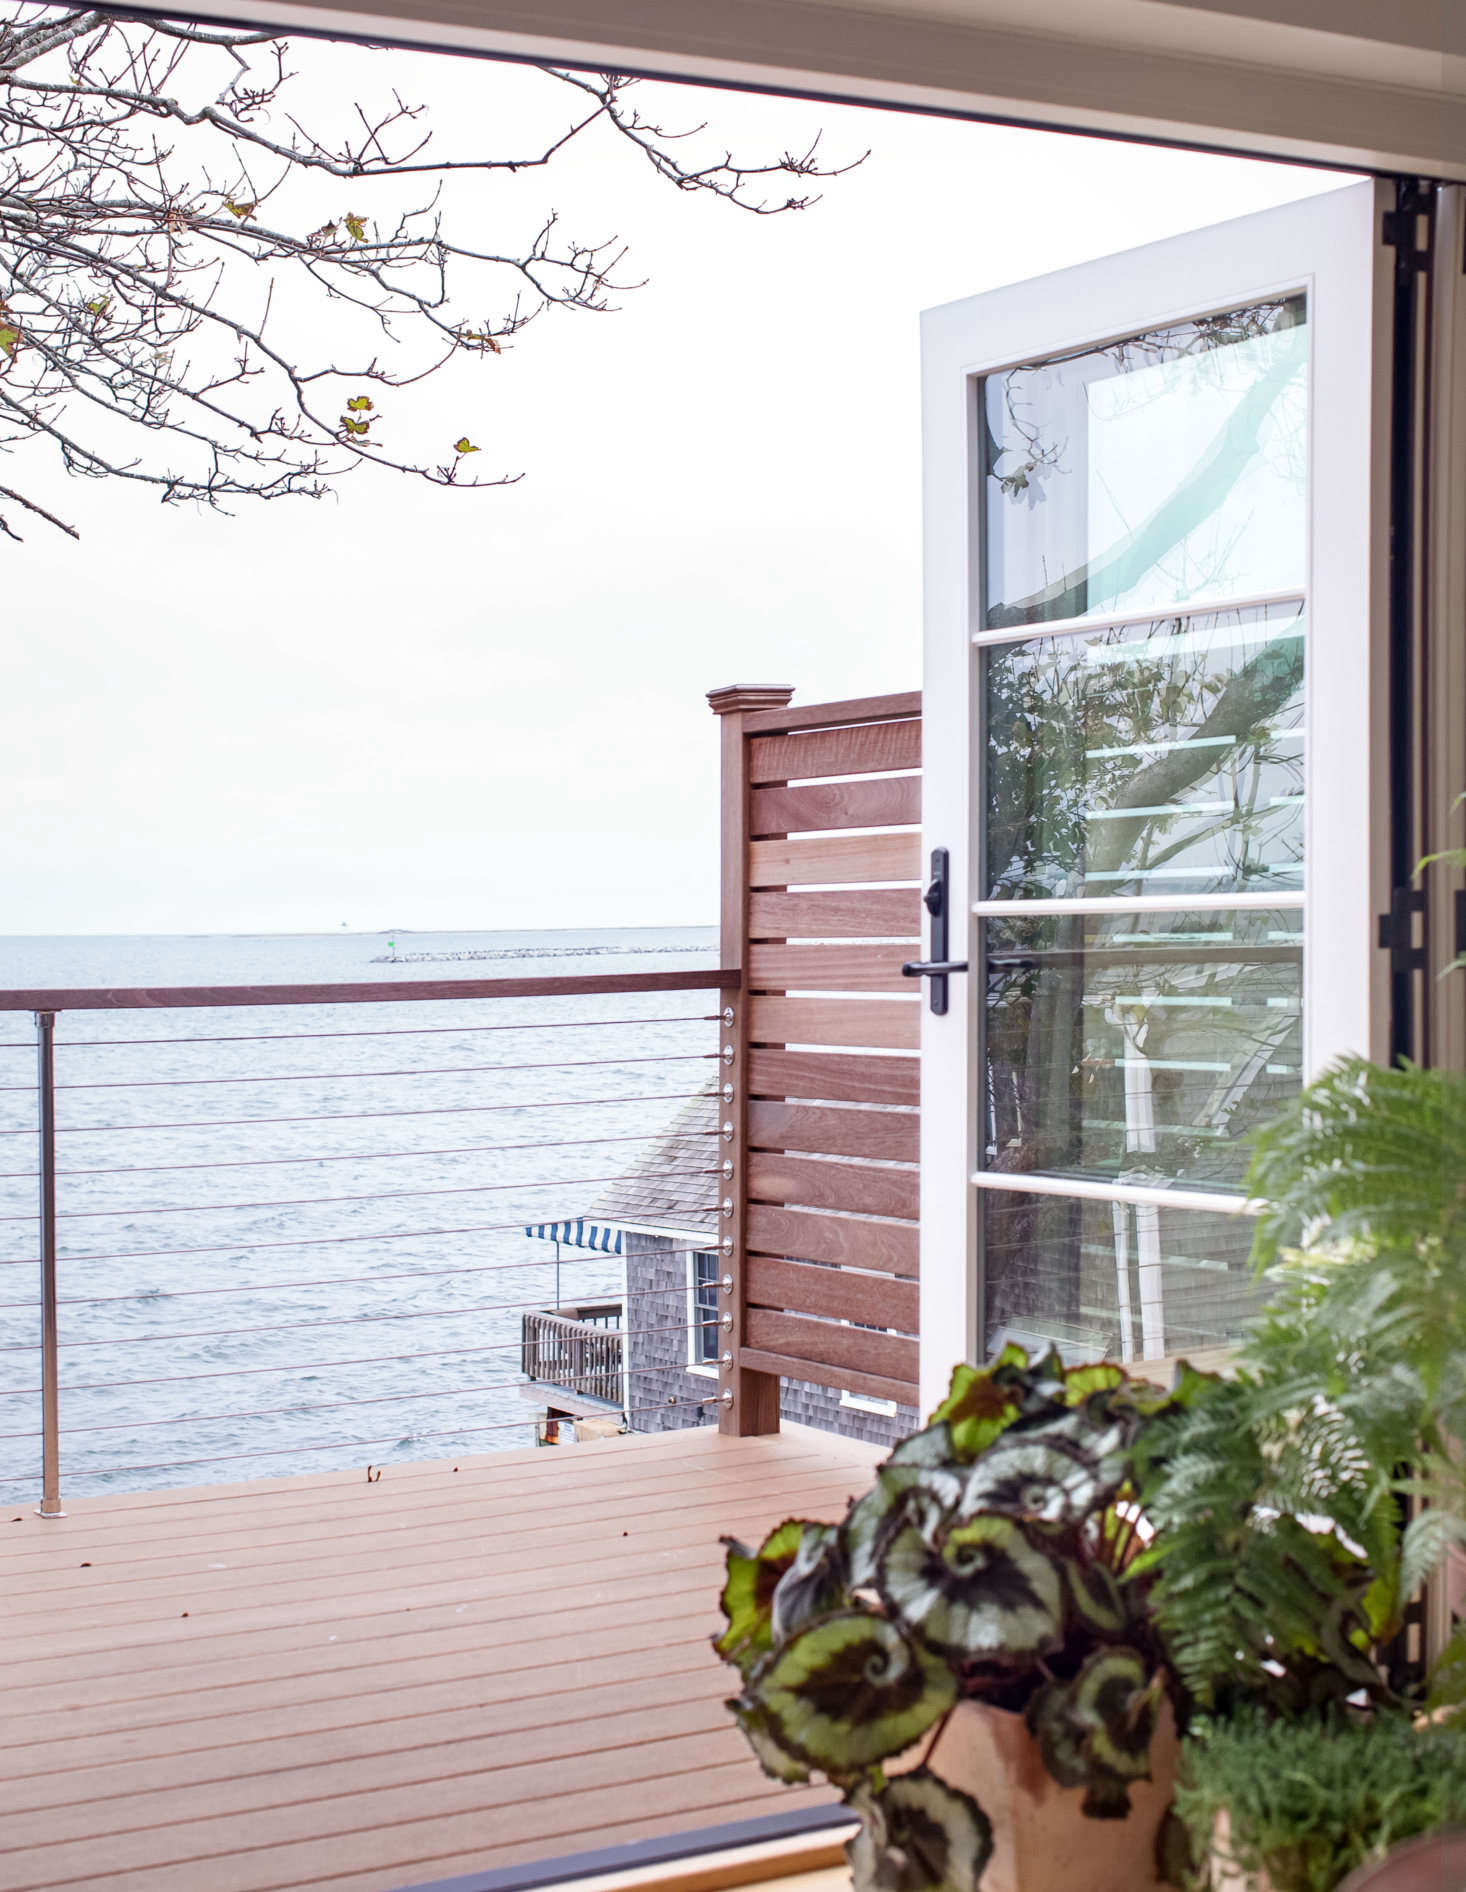 See more of this Cape Cod balcony deck at Out at Sea: A Shipshape Renovation in Provincetown by Hein+Cozzi. Photograph by Justine Hand.